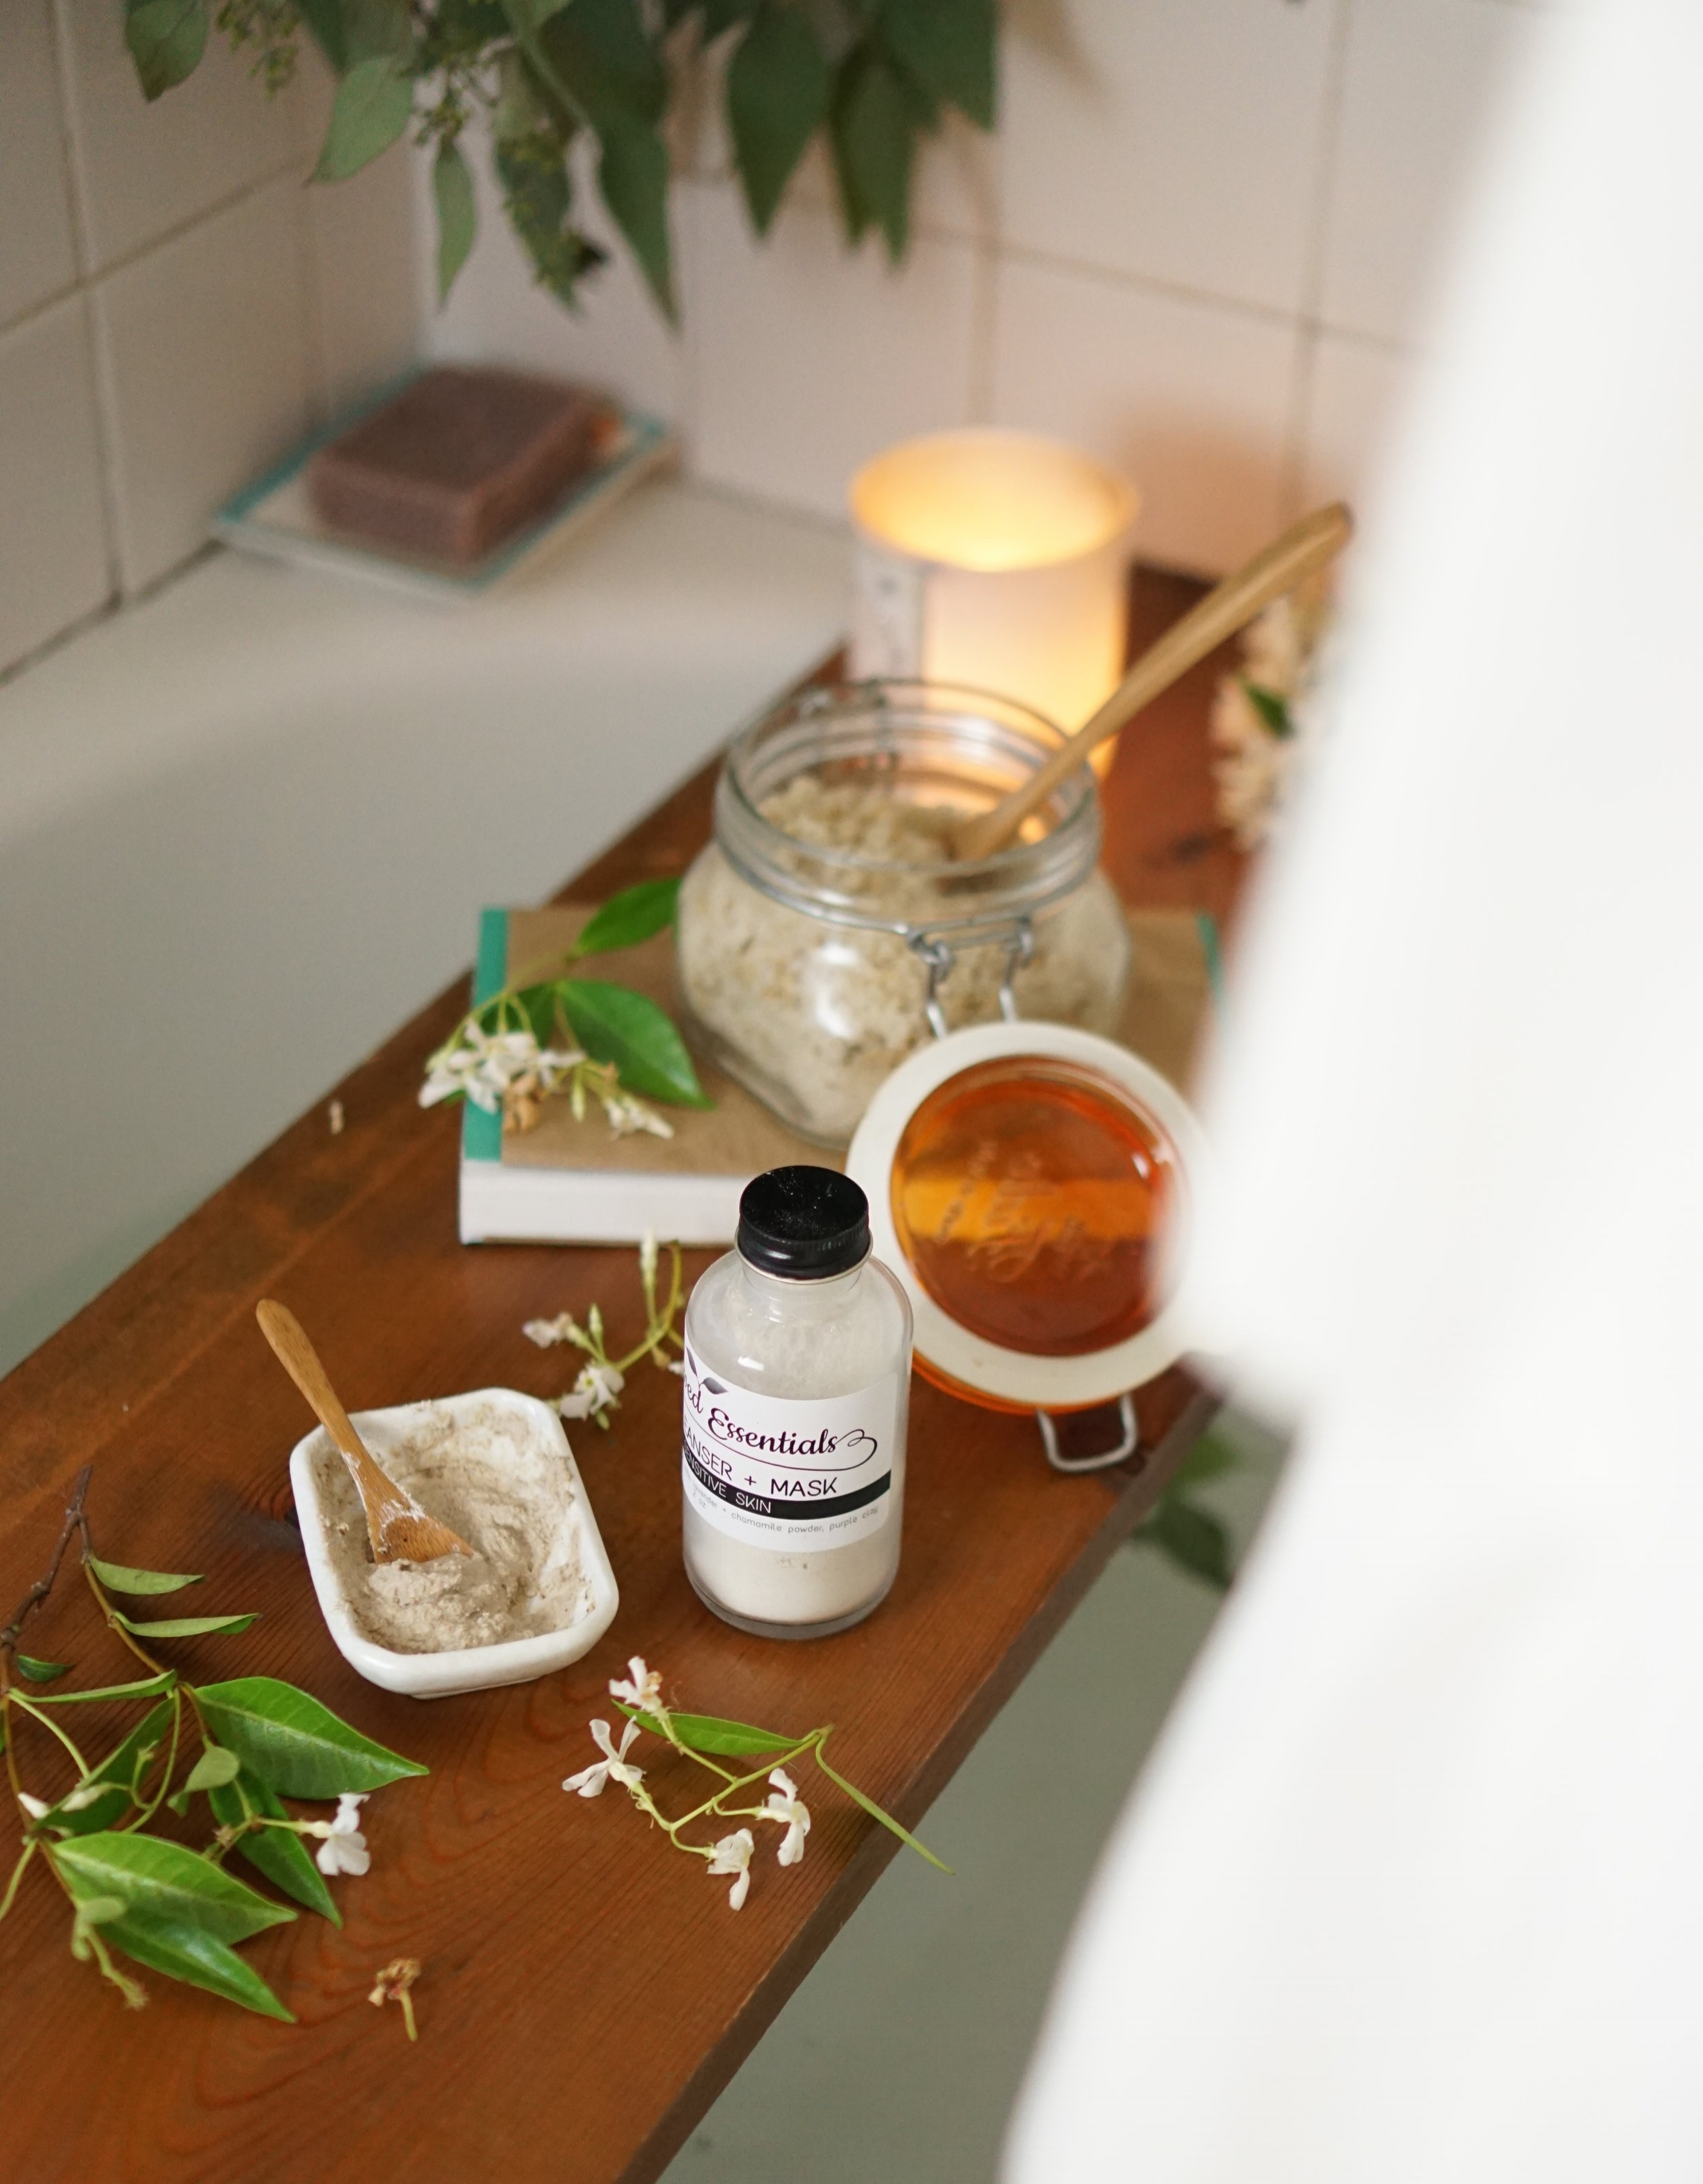 10 Ways to take care of yourself during your period from www.goingzerowaste.com #selfcare #wellness #zerowaste